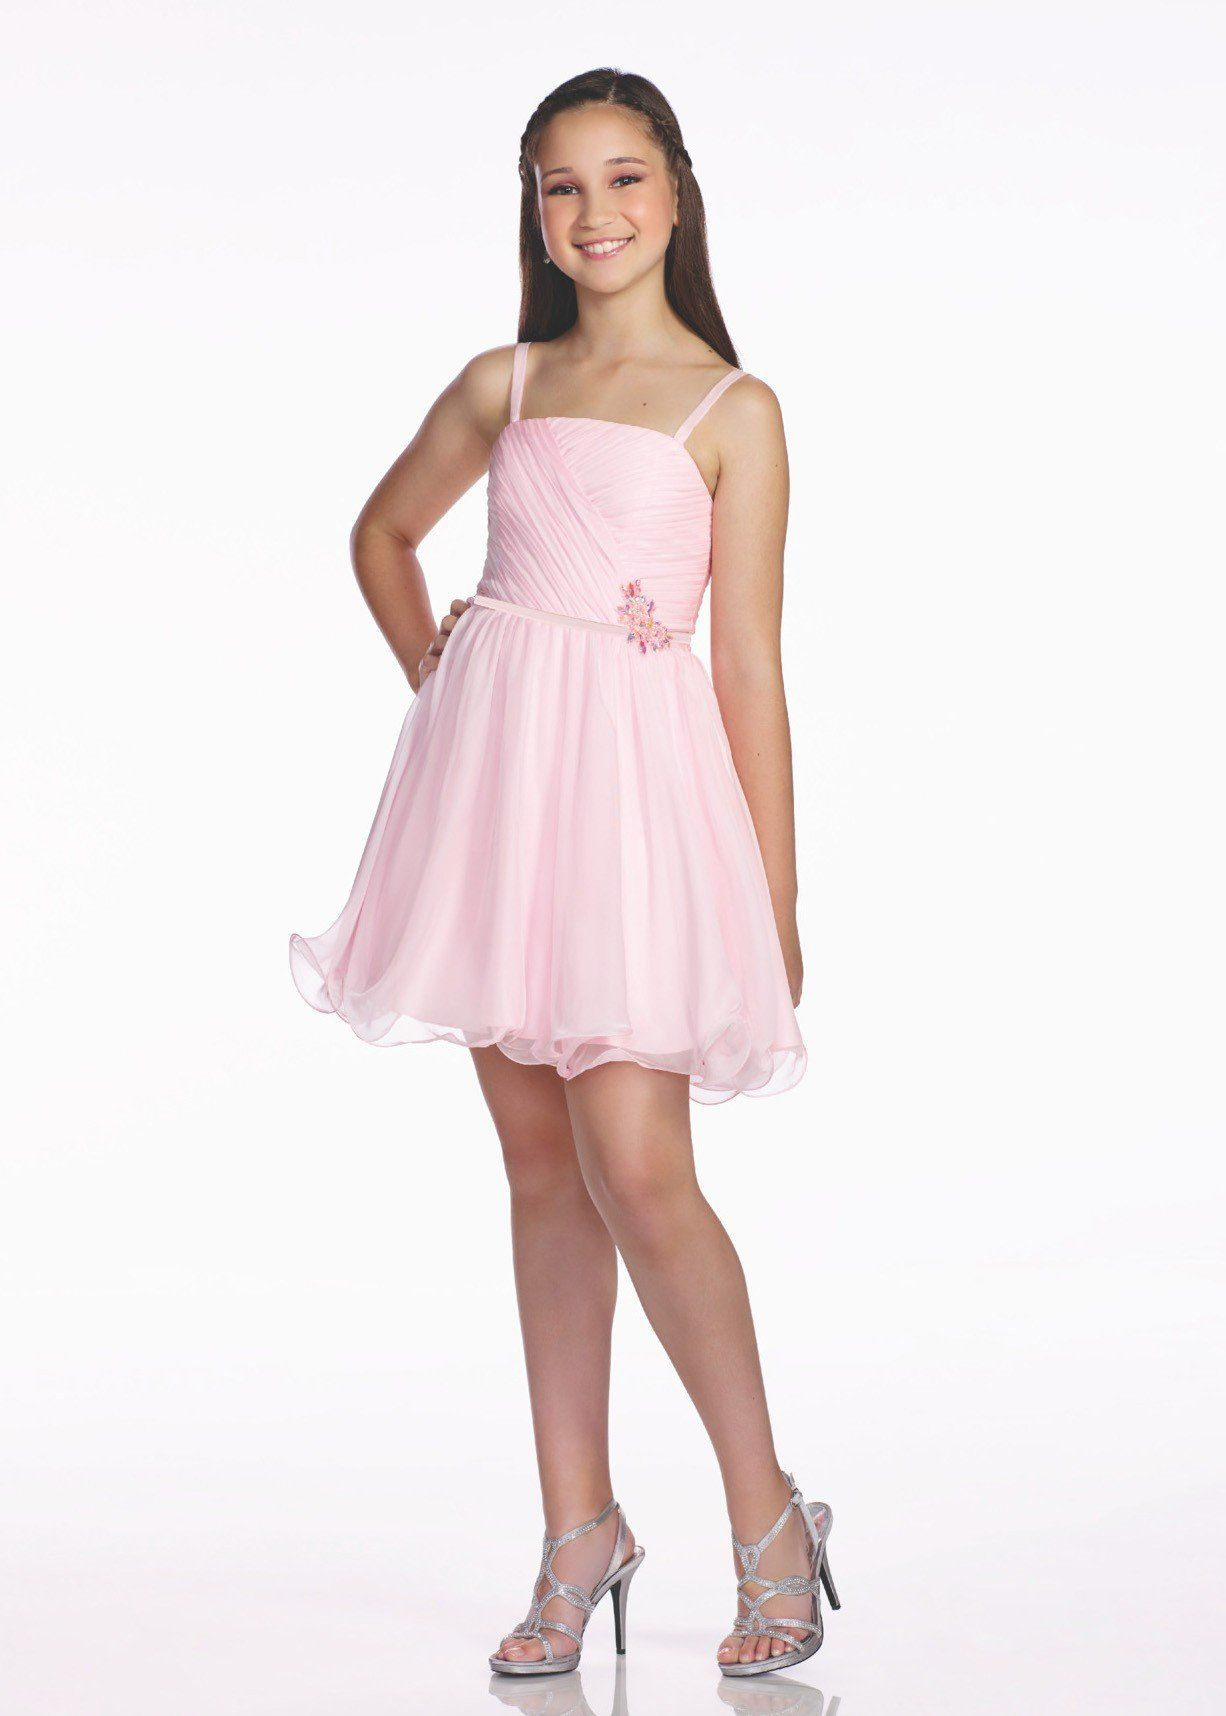 0b7f40c5a91 Lexie by Mon Cheri TW11656 Girls Ruched A-Line Dress in 2019 ...